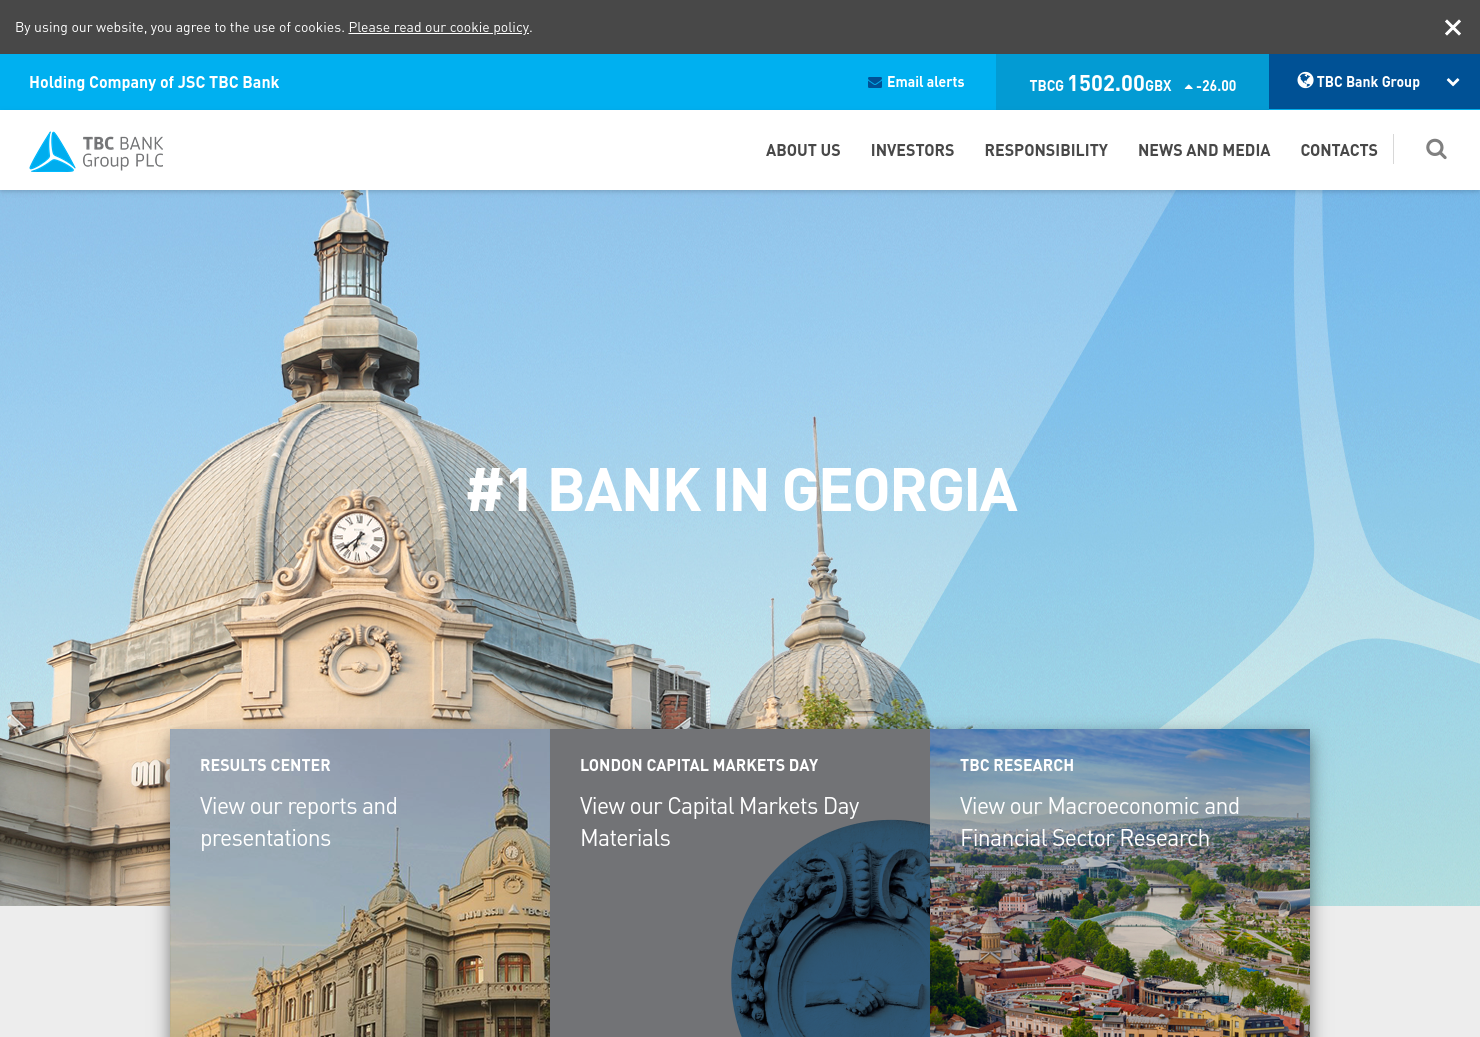 TBC Bank Group Home Page